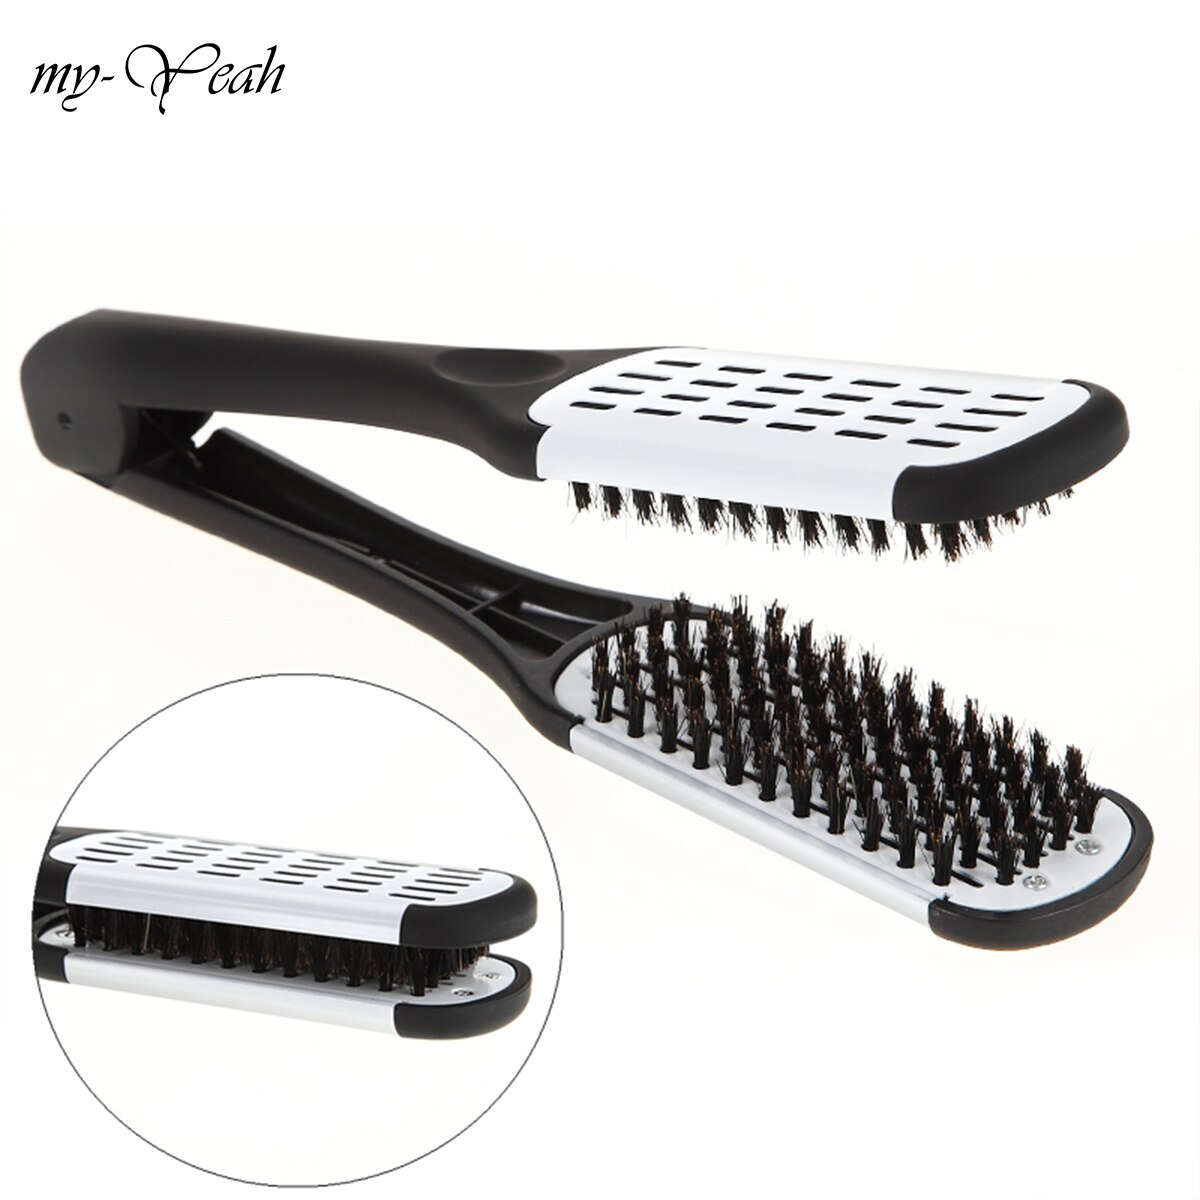 Pro Hairdressing Straightener Ceramic Hair Straightening Double Brushes V Shape Comb Clamp Not Hurt Styling Tools